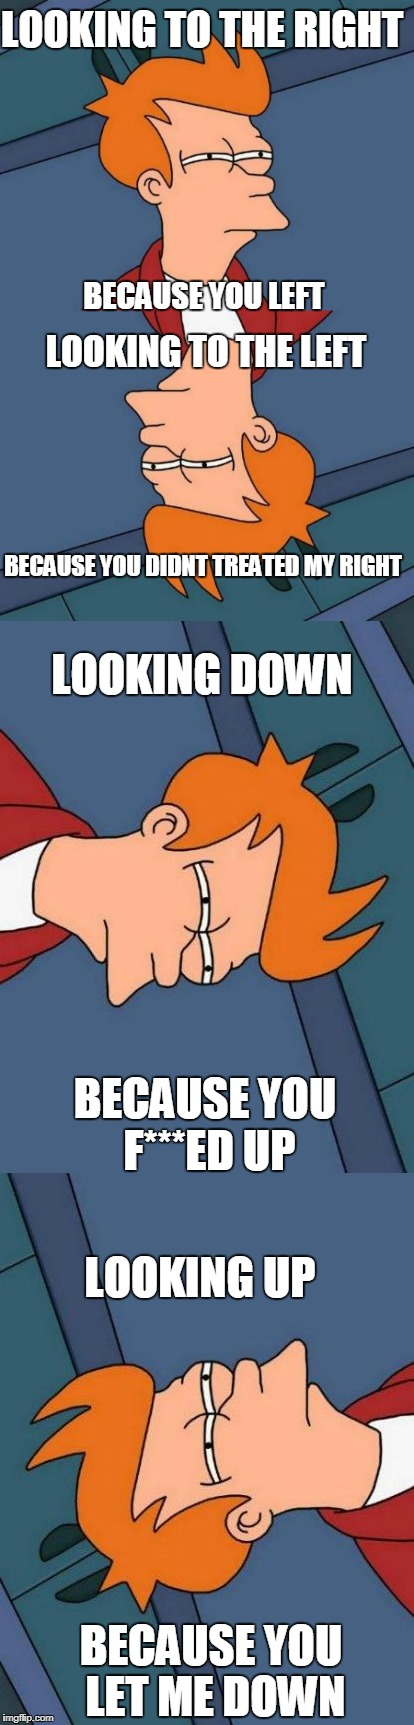 LOOKING TO THE RIGHT BECAUSE YOU LEFT LOOKING TO THE LEFT BECAUSE YOU DIDNT TREATED MY RIGHT BECAUSE YOU F***ED UP LOOKING DOWN LOOKING UP B | image tagged in ssby,funny,futurama fry,upvote troll | made w/ Imgflip meme maker